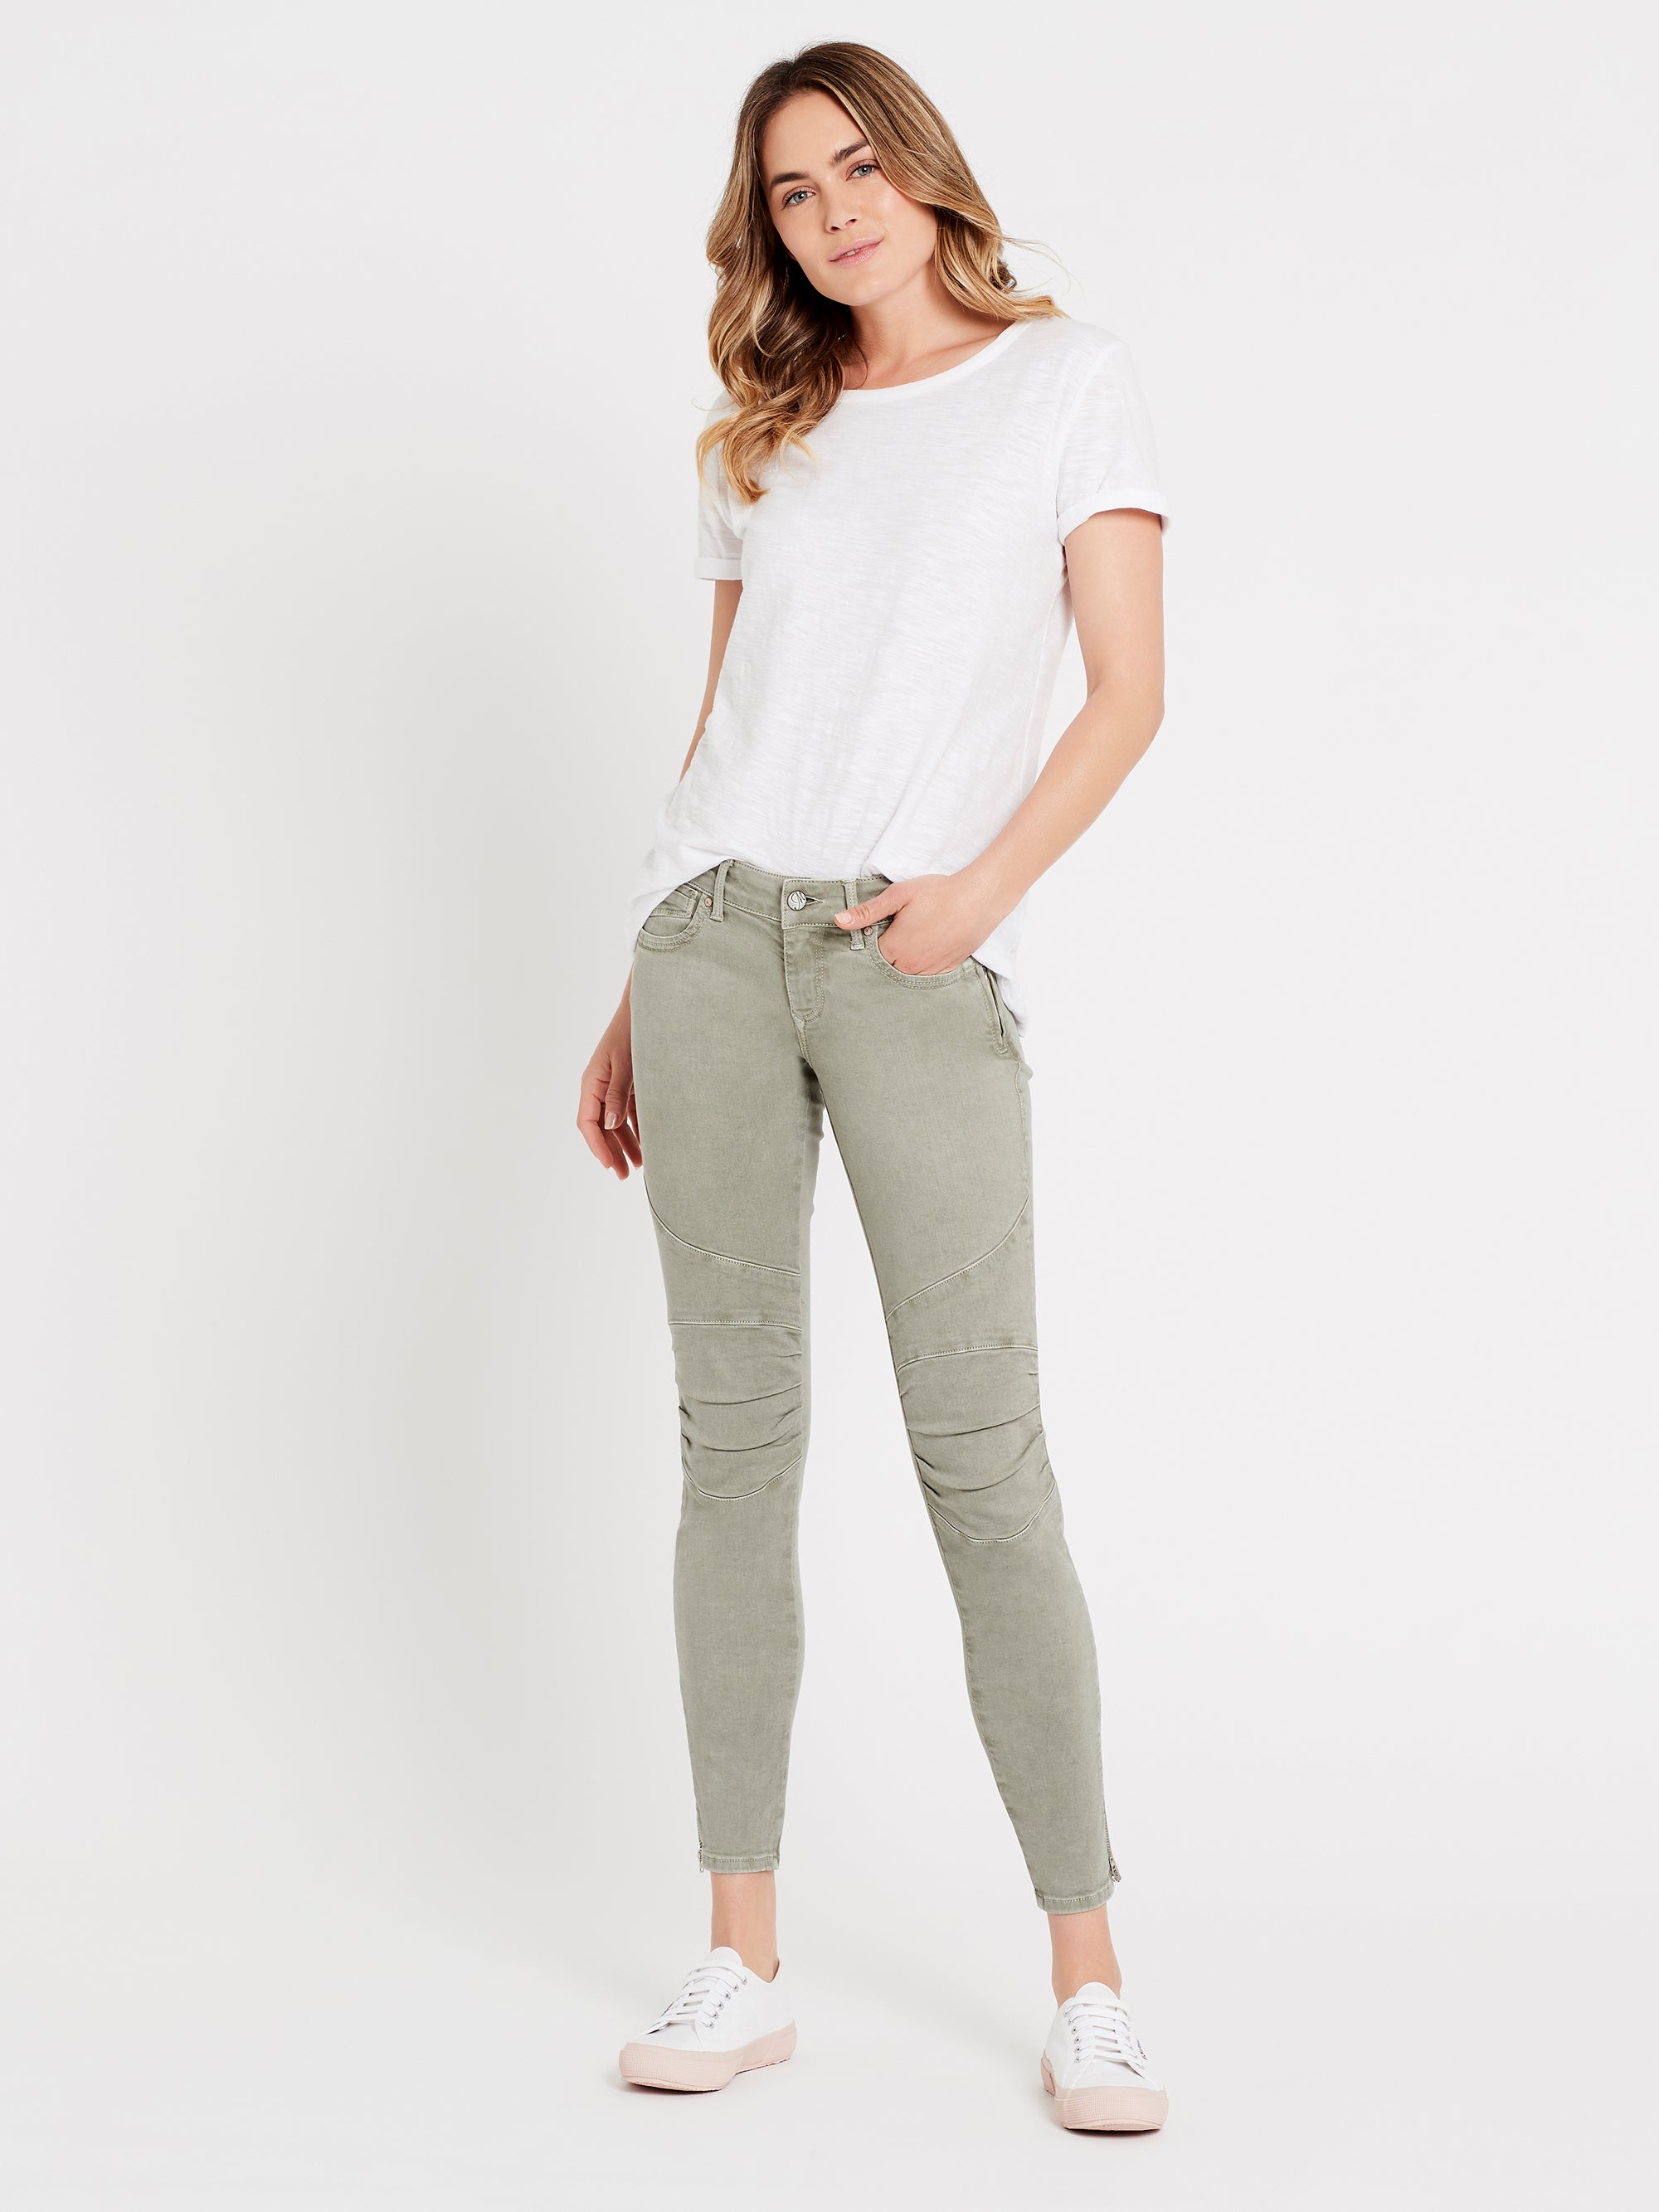 Jesy Skinny Ankle Biker Jeans in Shadow Washed Stretch